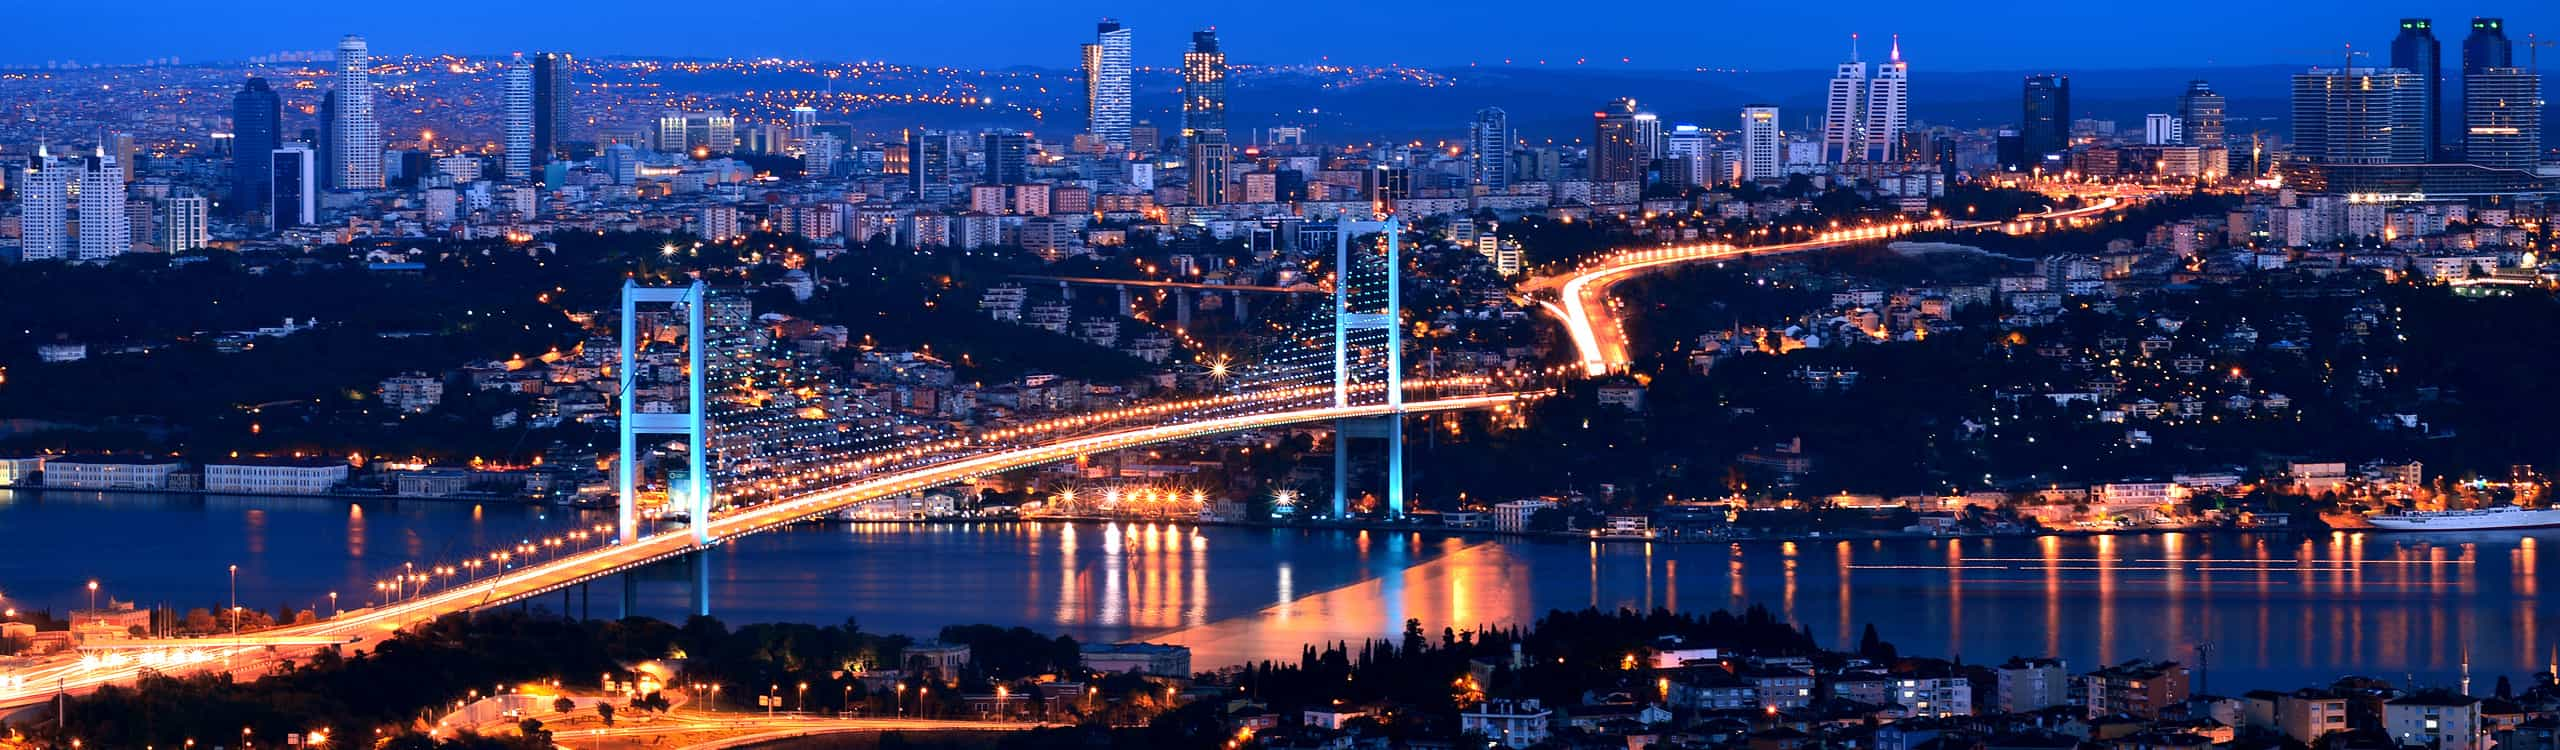 night view on the bridge in Istanbul, Turkey